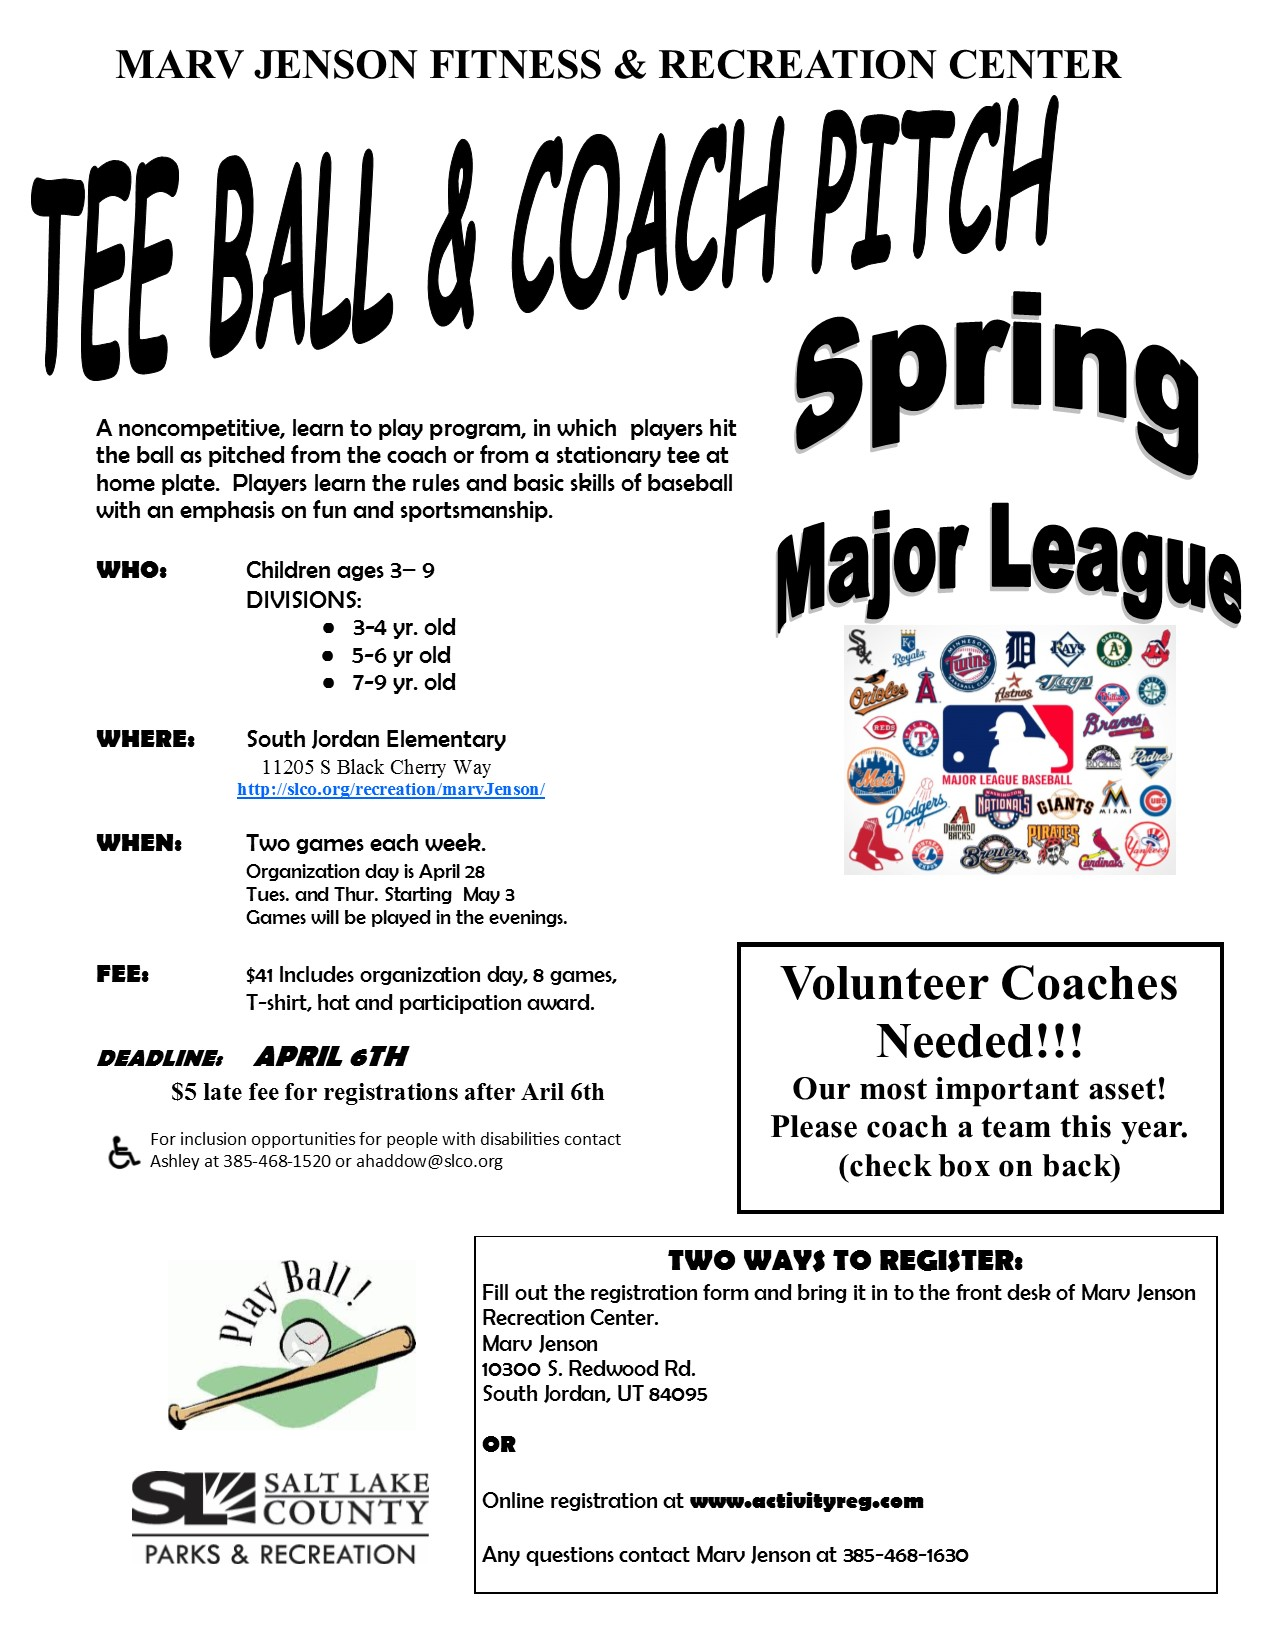 T ball 20coach 20pitch 20flyer 20and 20registration 20spring 202016